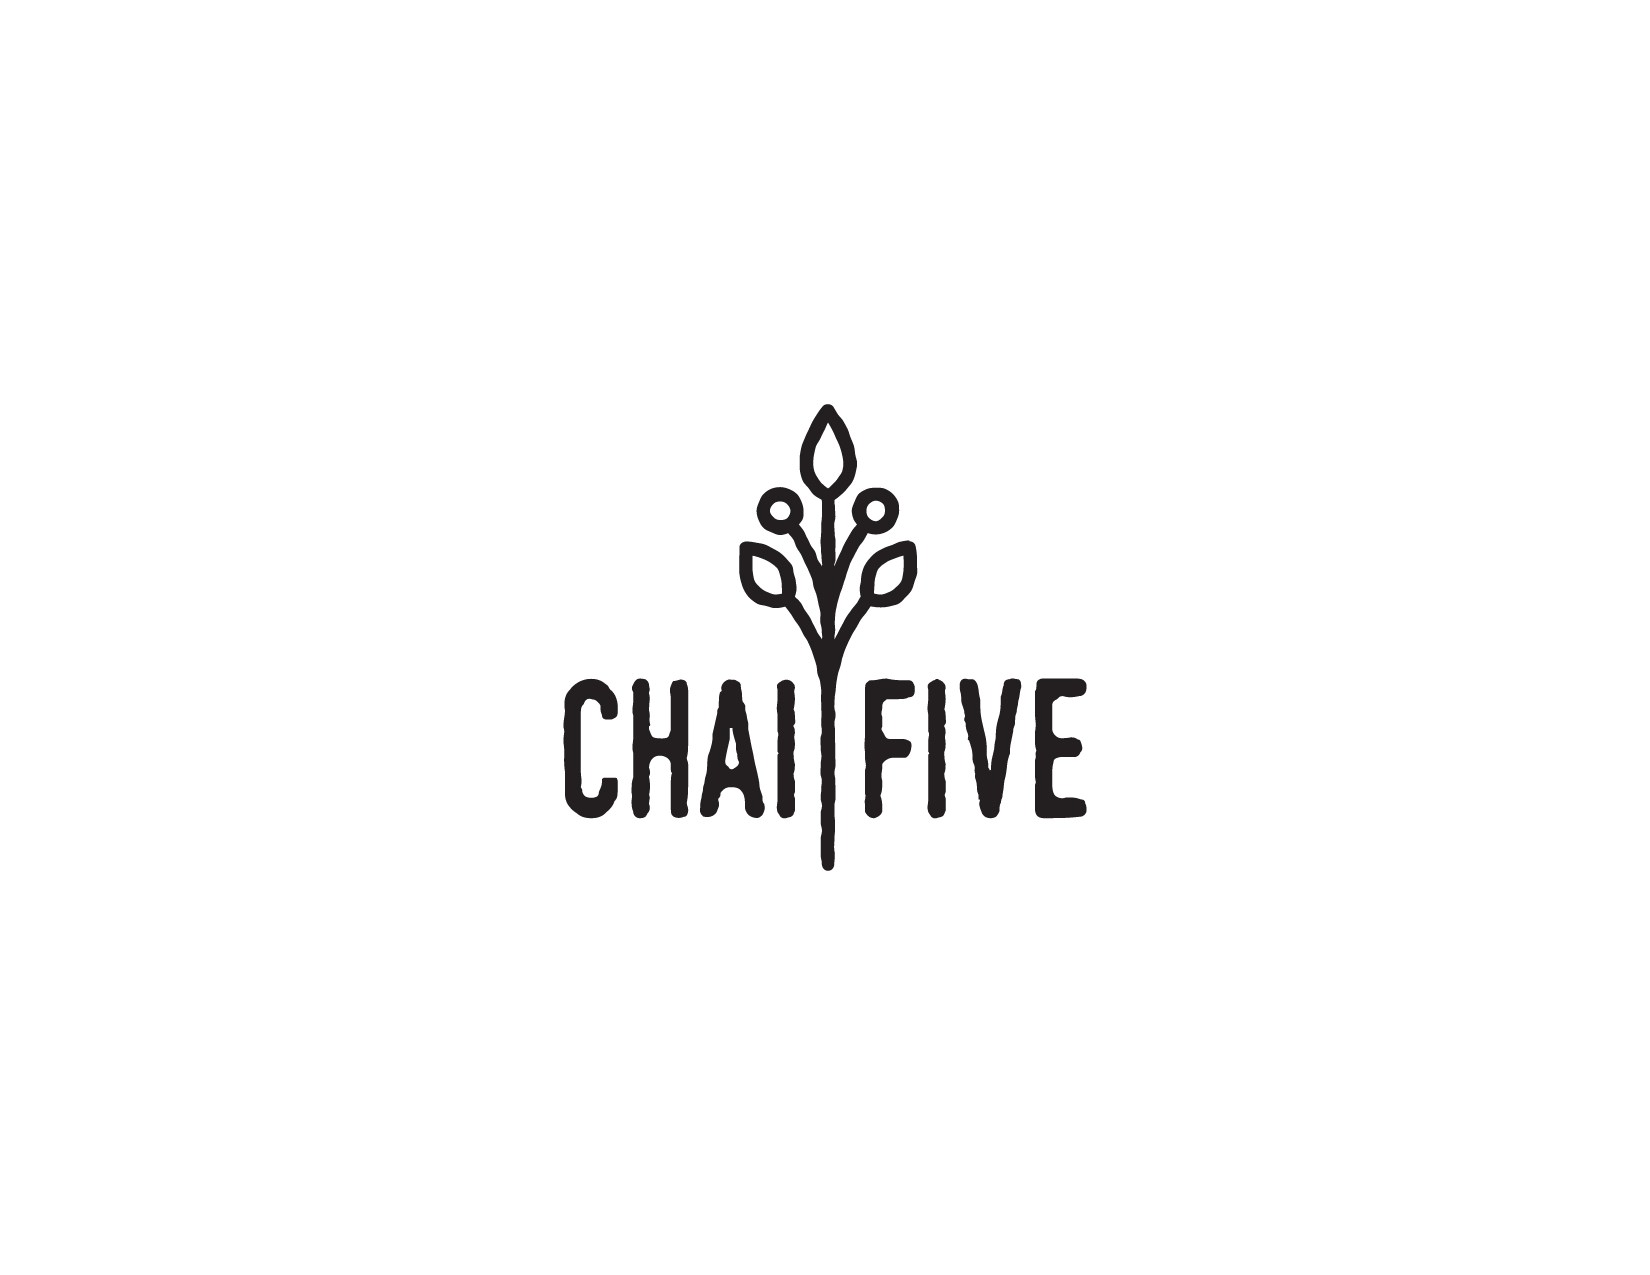 CHAIFIVE_LOGO-11_1-Color.png